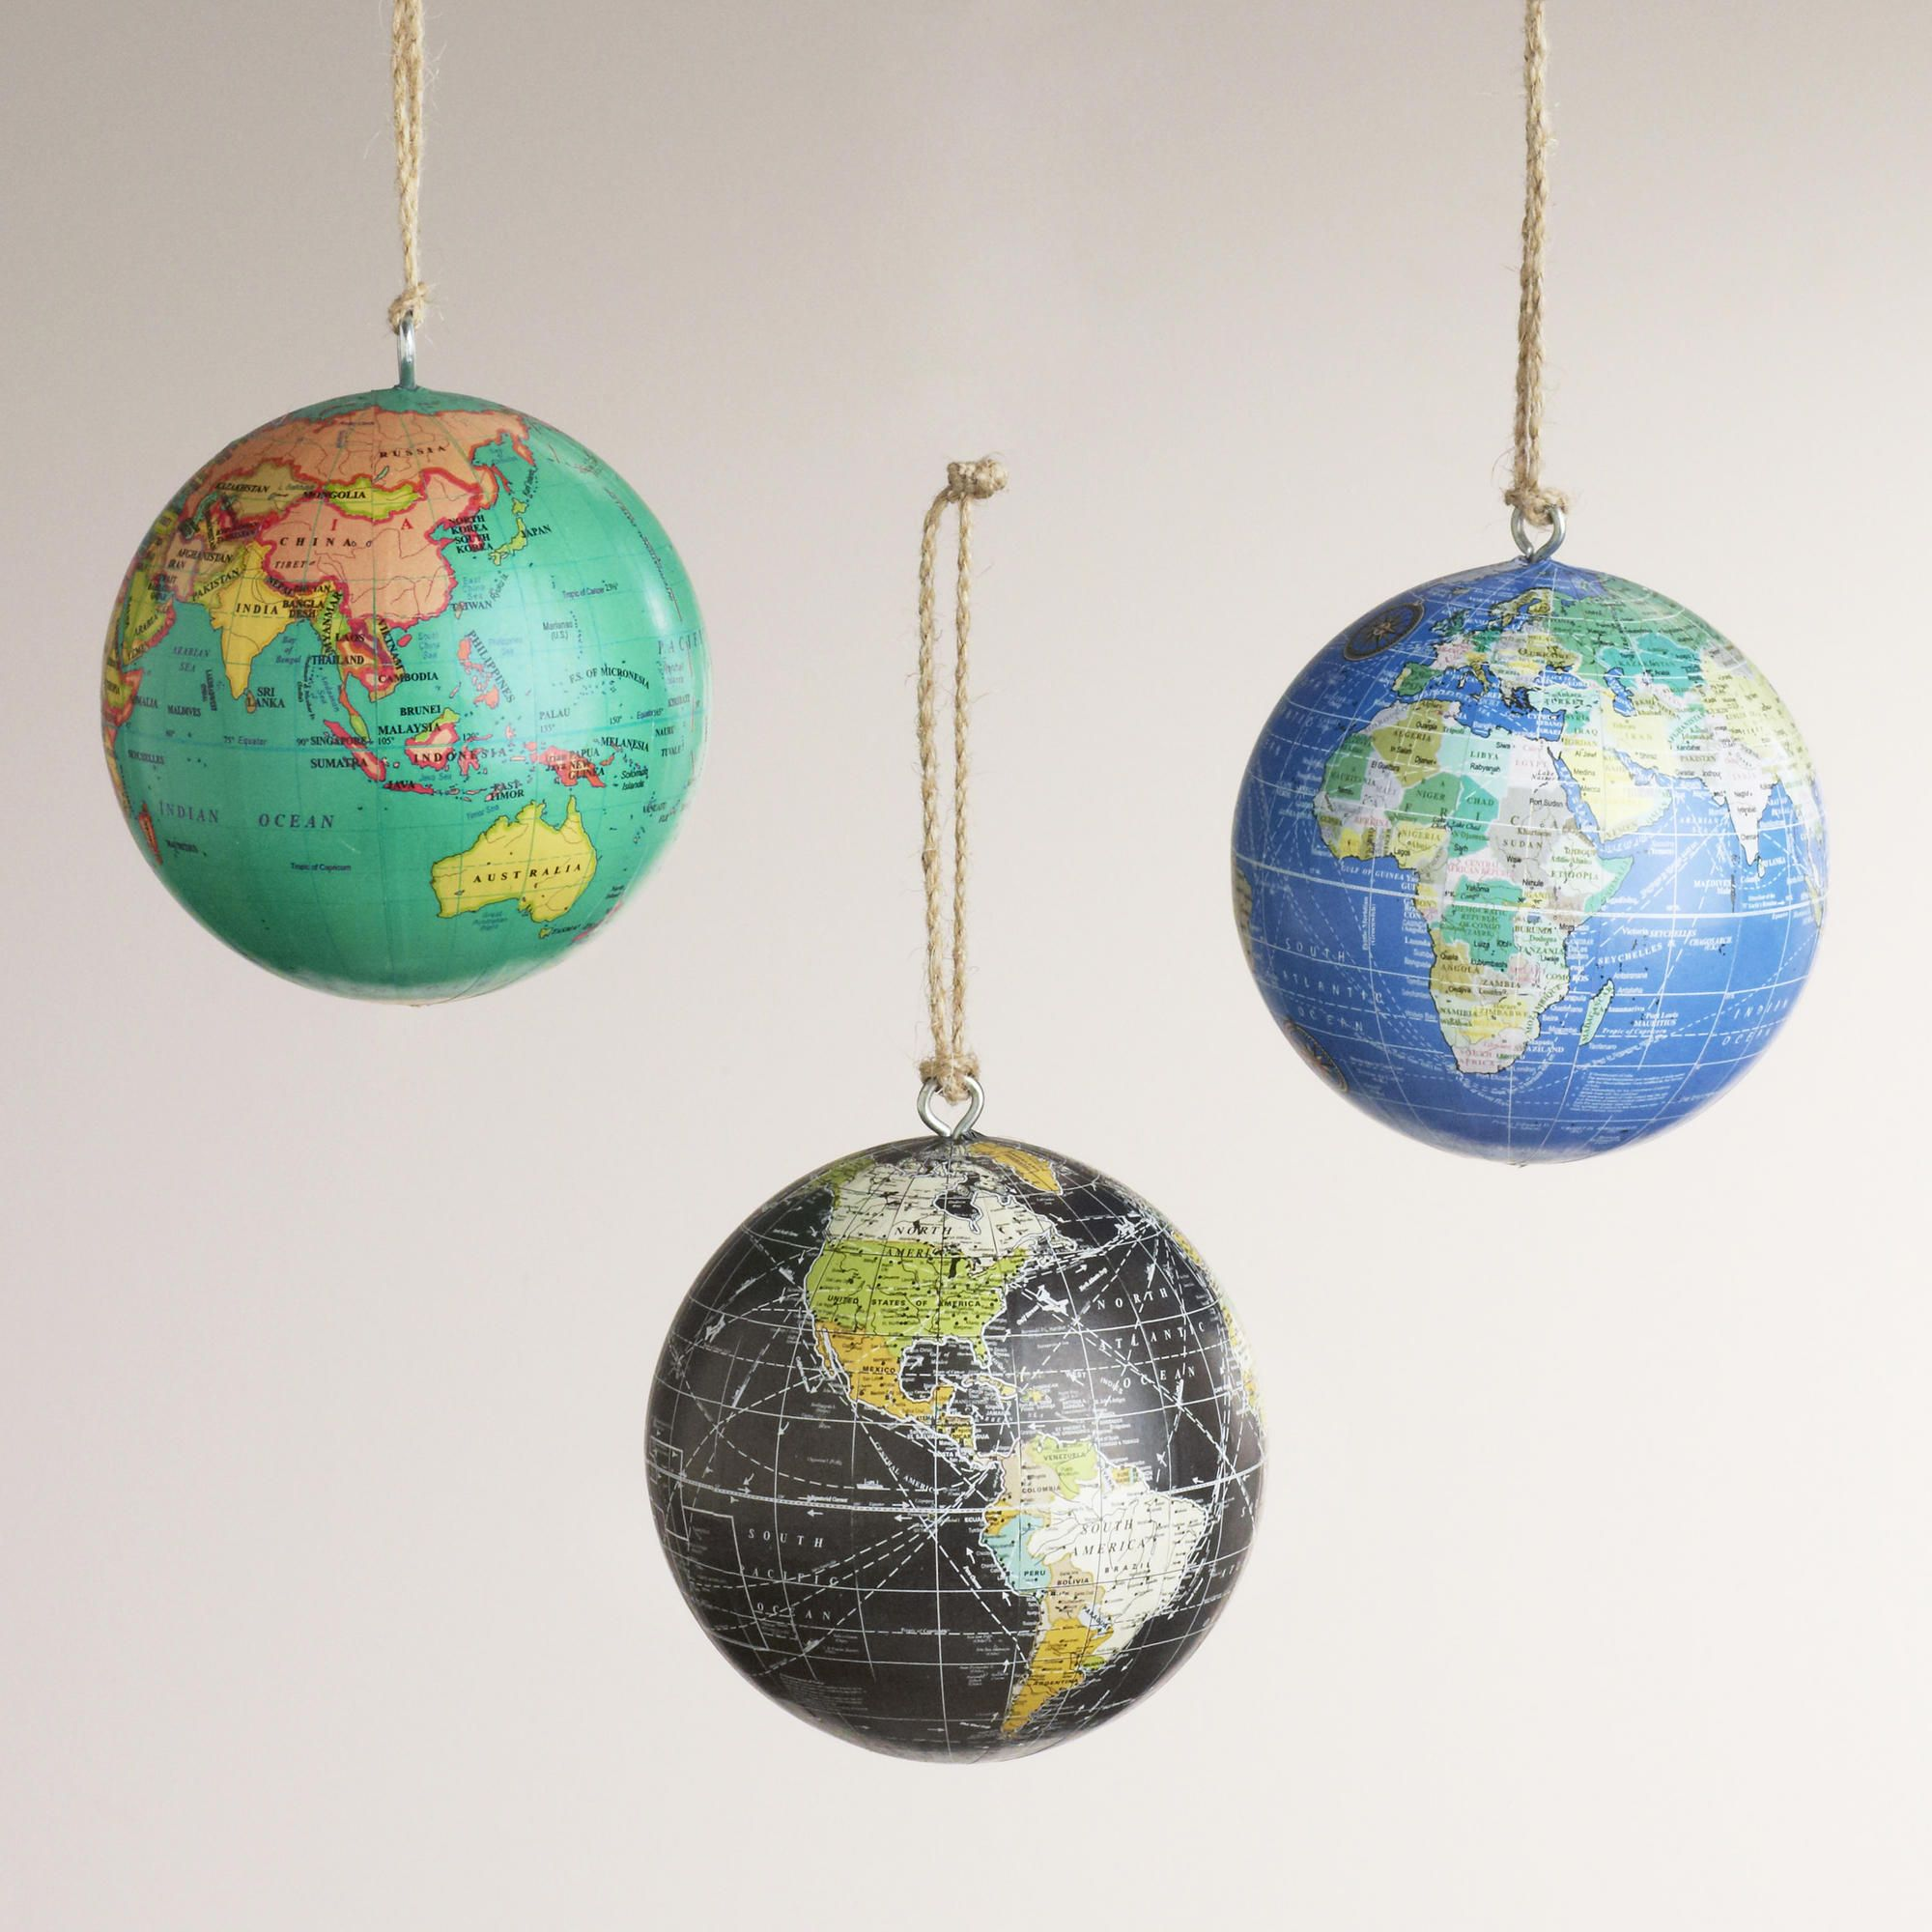 World globe christmas ornaments - Gallery Of World Globe Christmas Ornaments